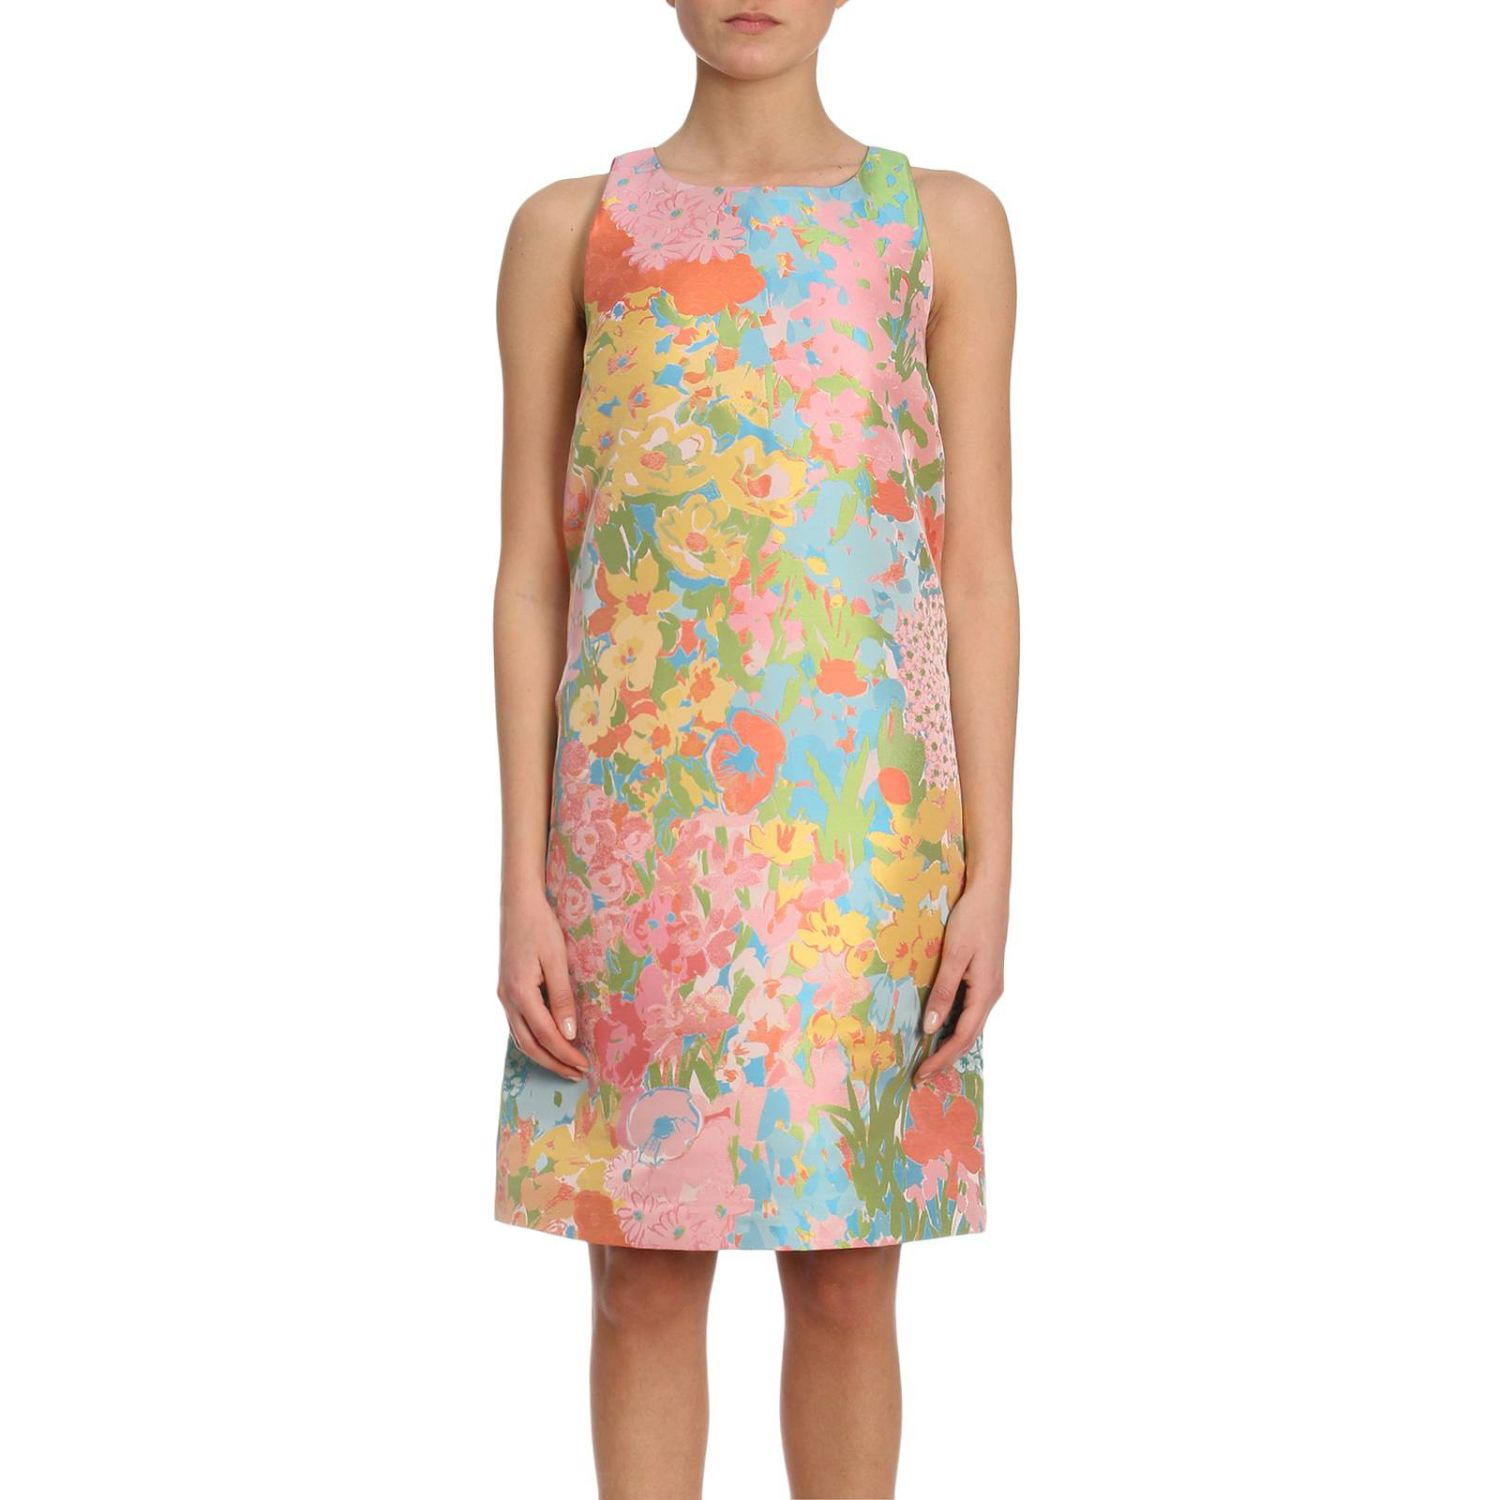 Dress Dress Women Boutique Moschino 8293915